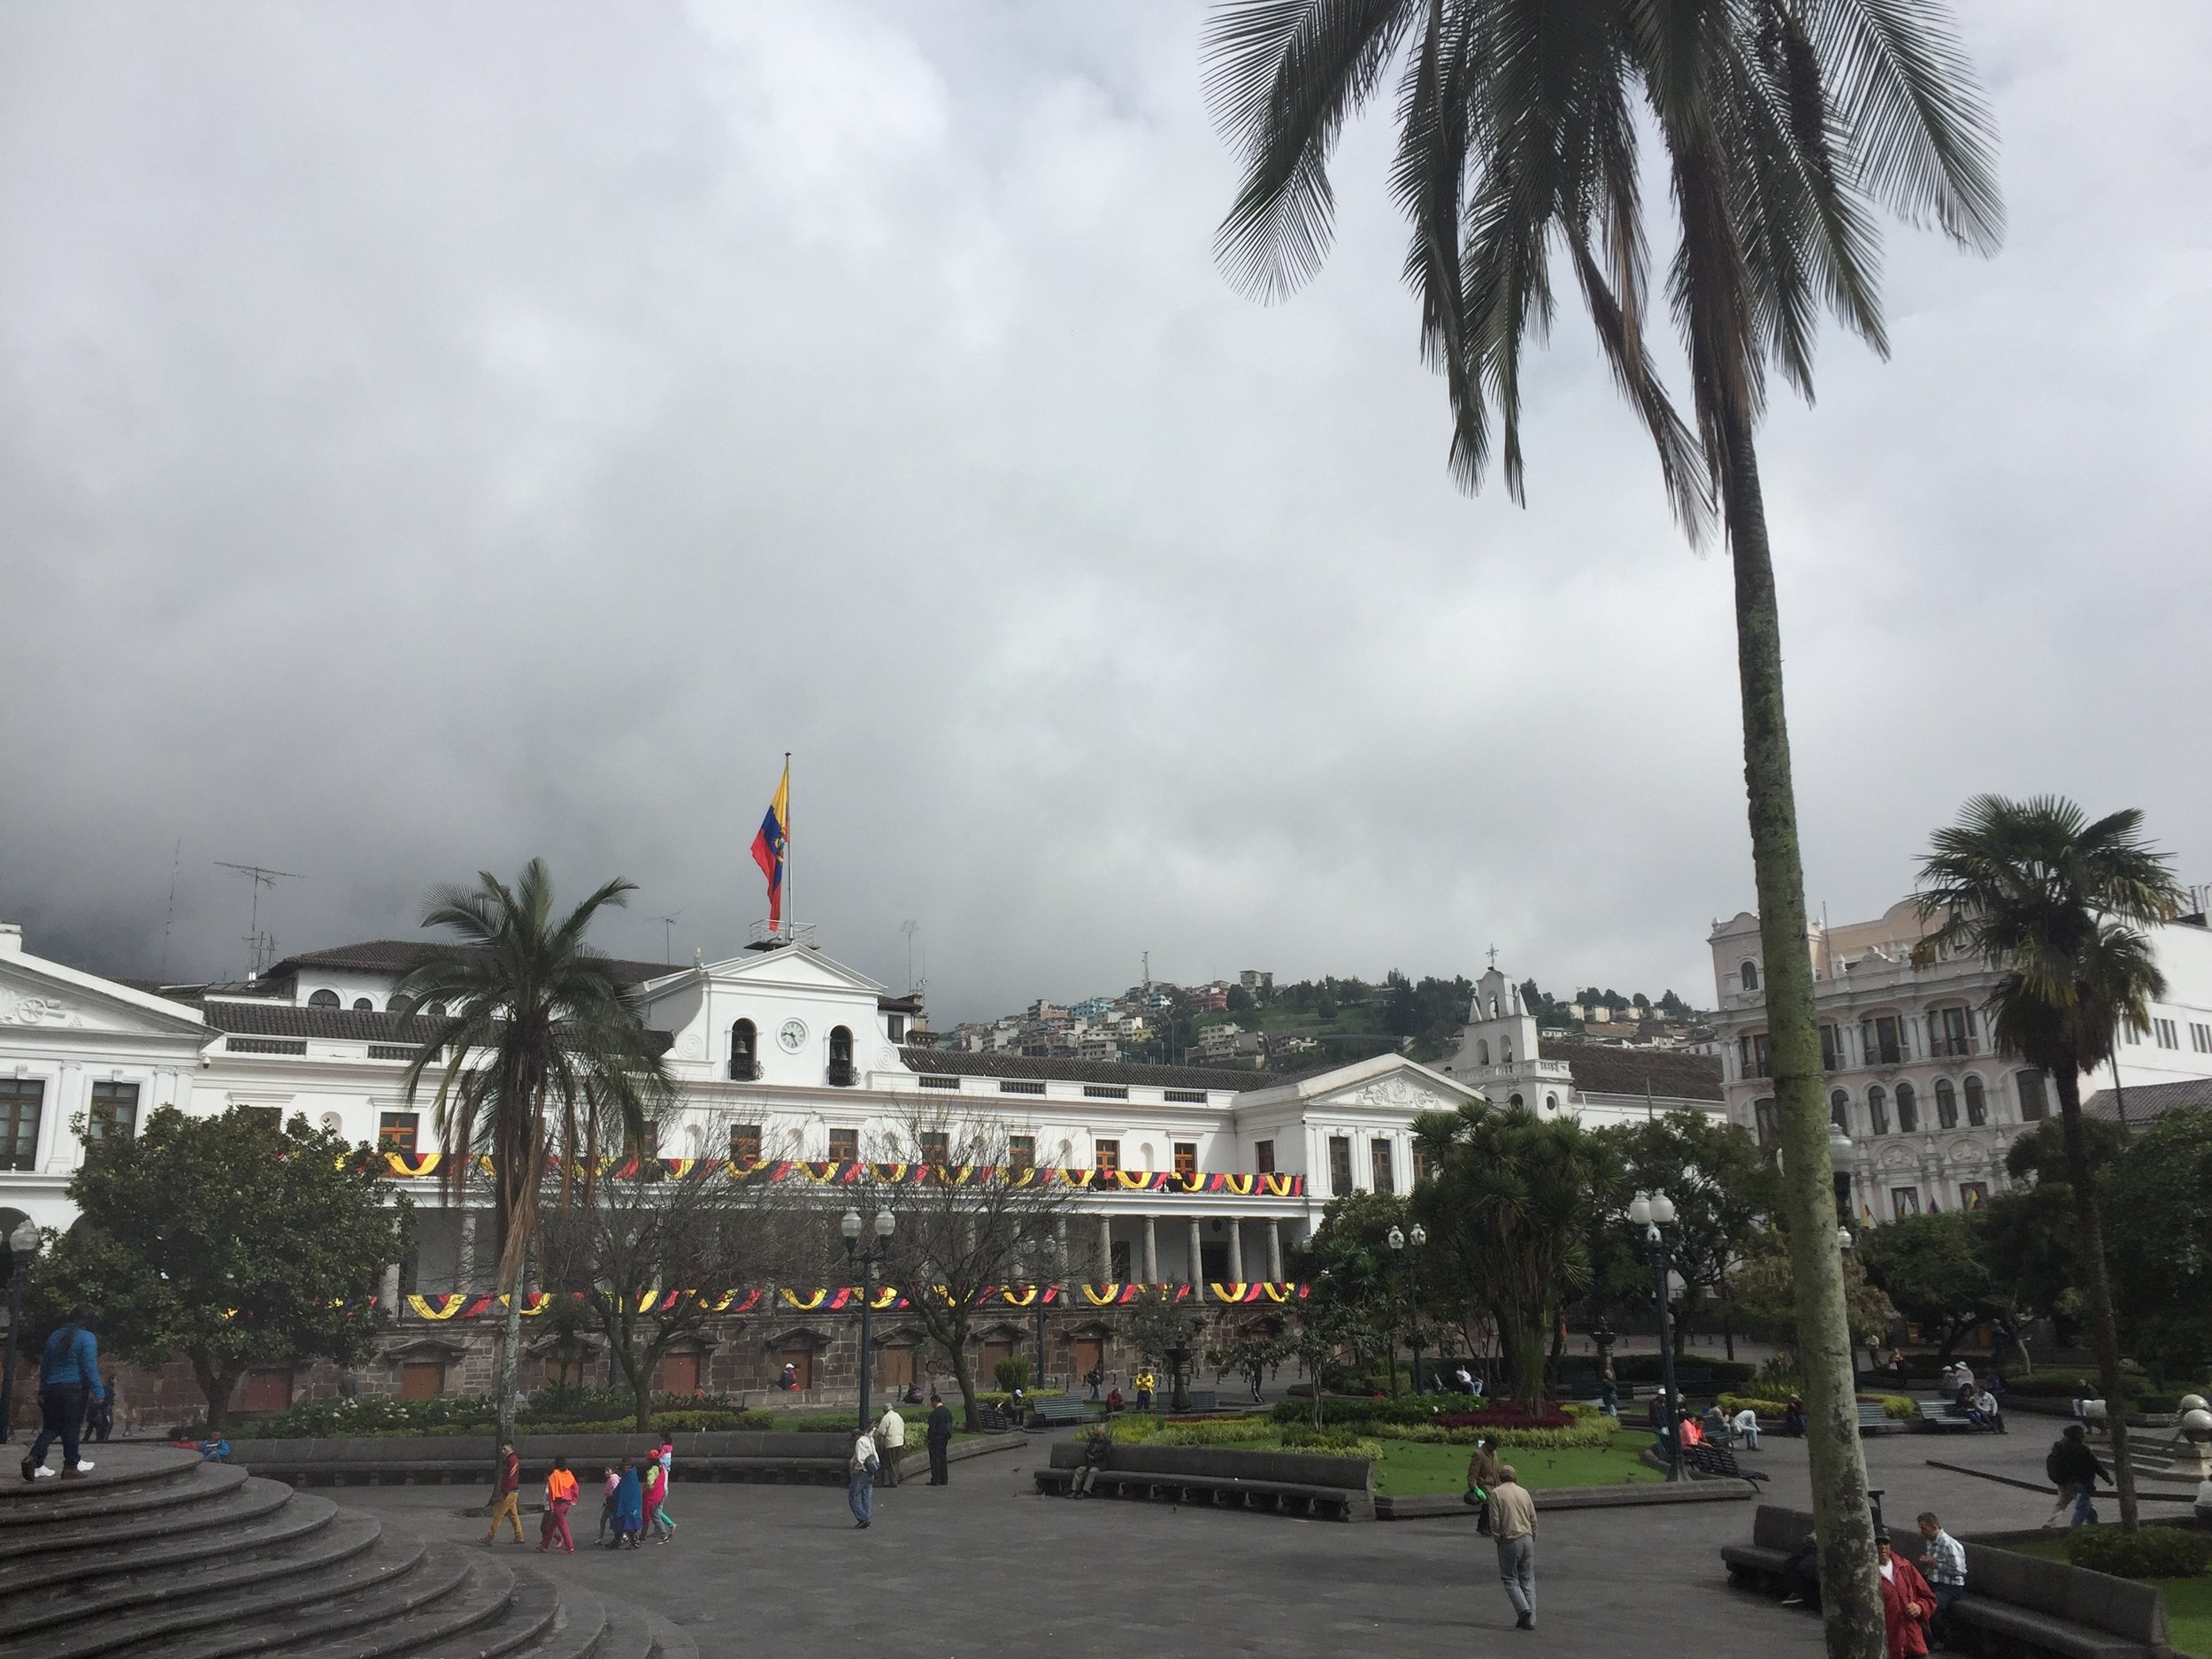 Presidential Palace at the Plaza de la Independencia.